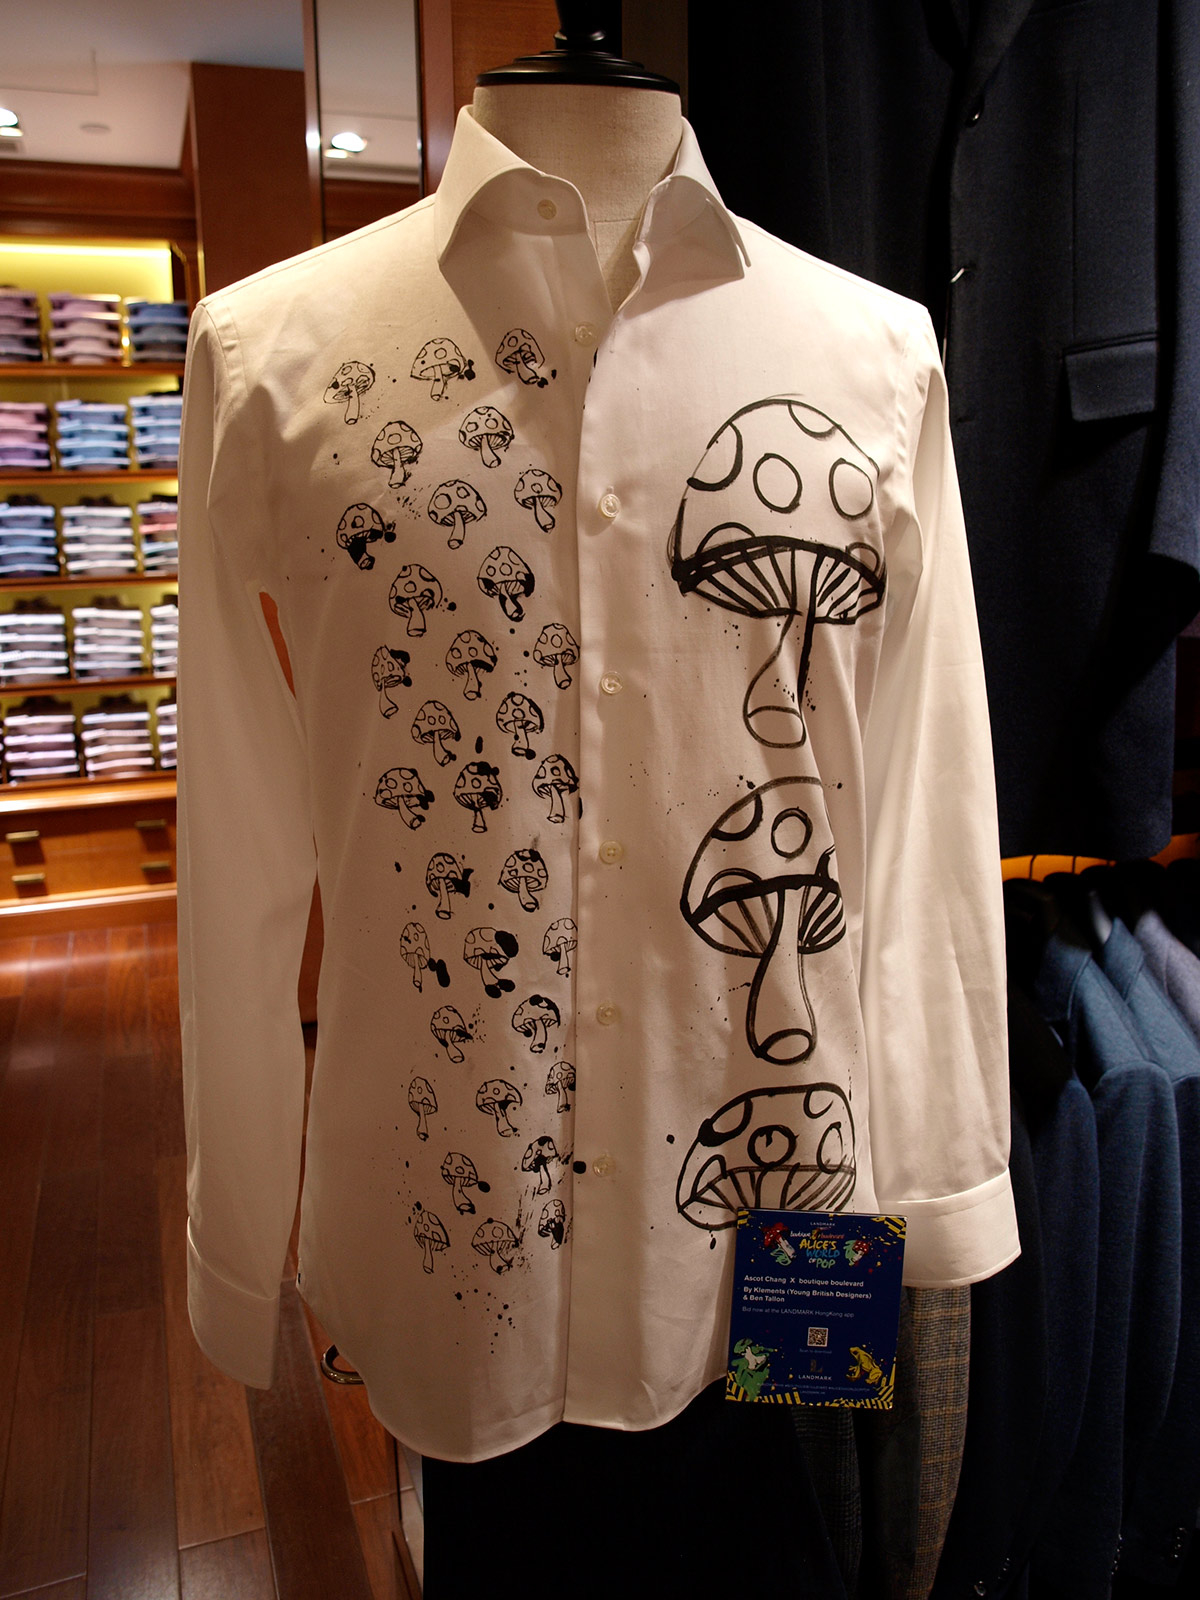 Custom shirt illustration, fashion design with Ascot Chang, Hong Kong, by Ben Tallon, loose drawing, ink, line art, pen and ink